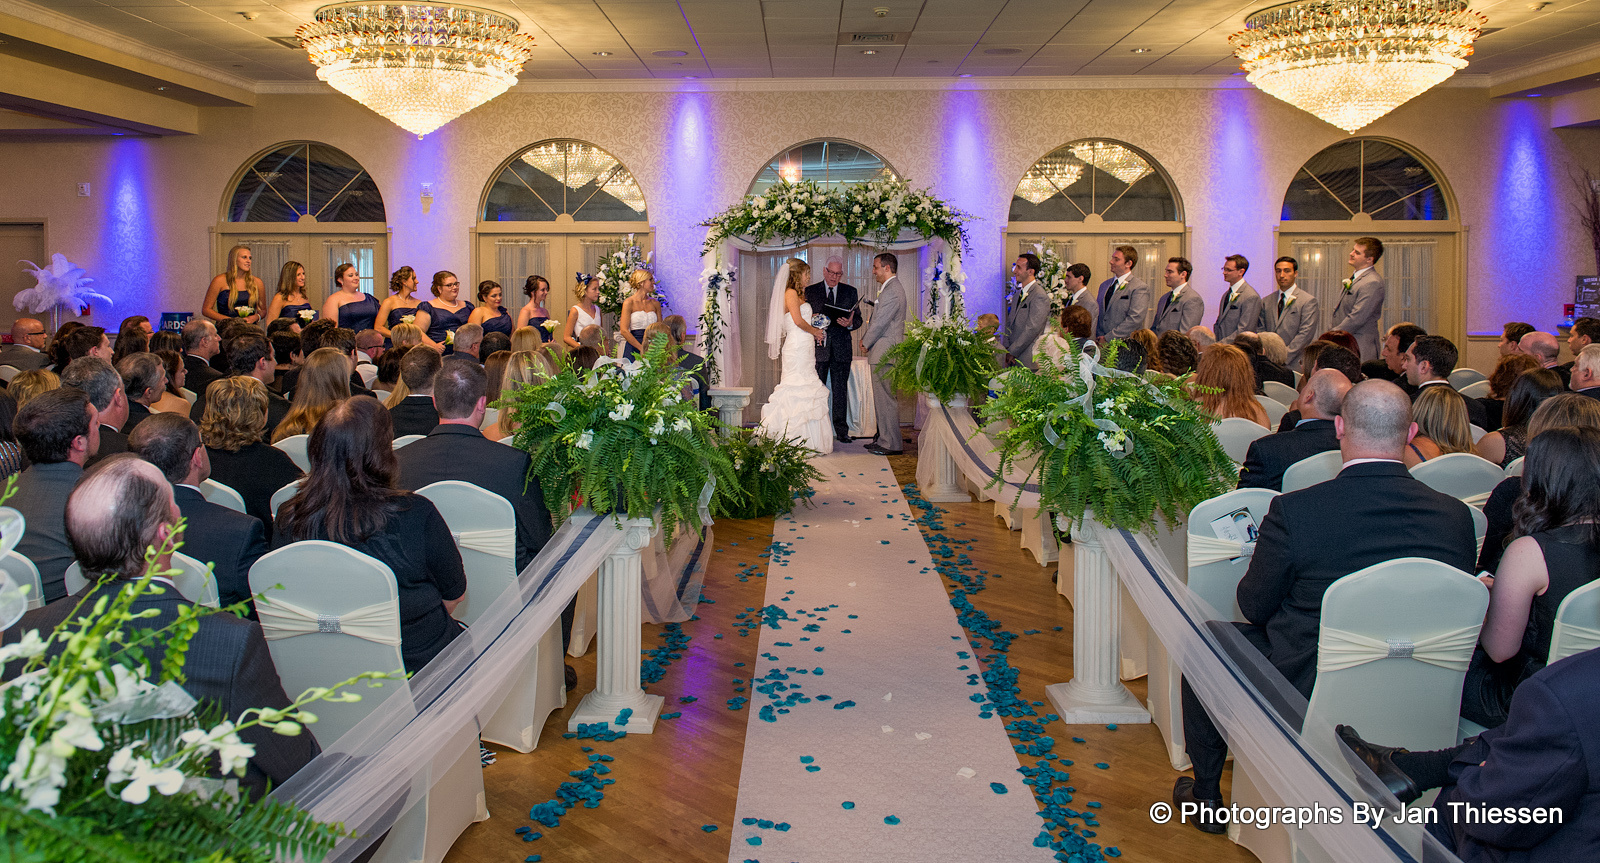 Advantages Of The Outdoor Wedding Reception: Benefits Of Indoor Wedding Venues